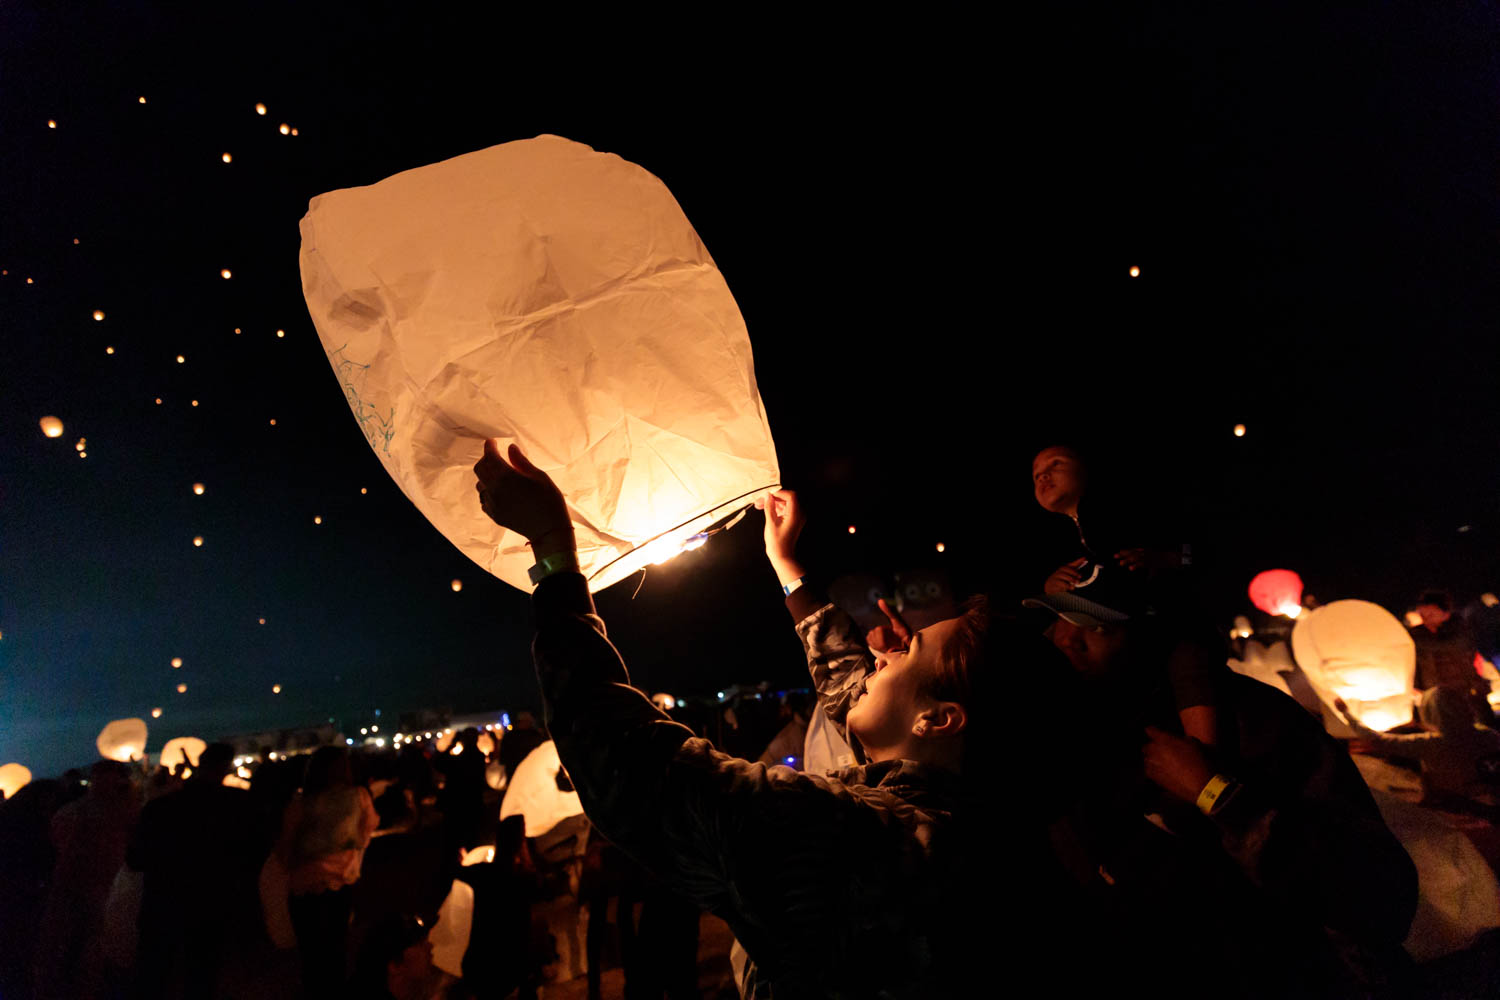 Releasing the lantern into the night